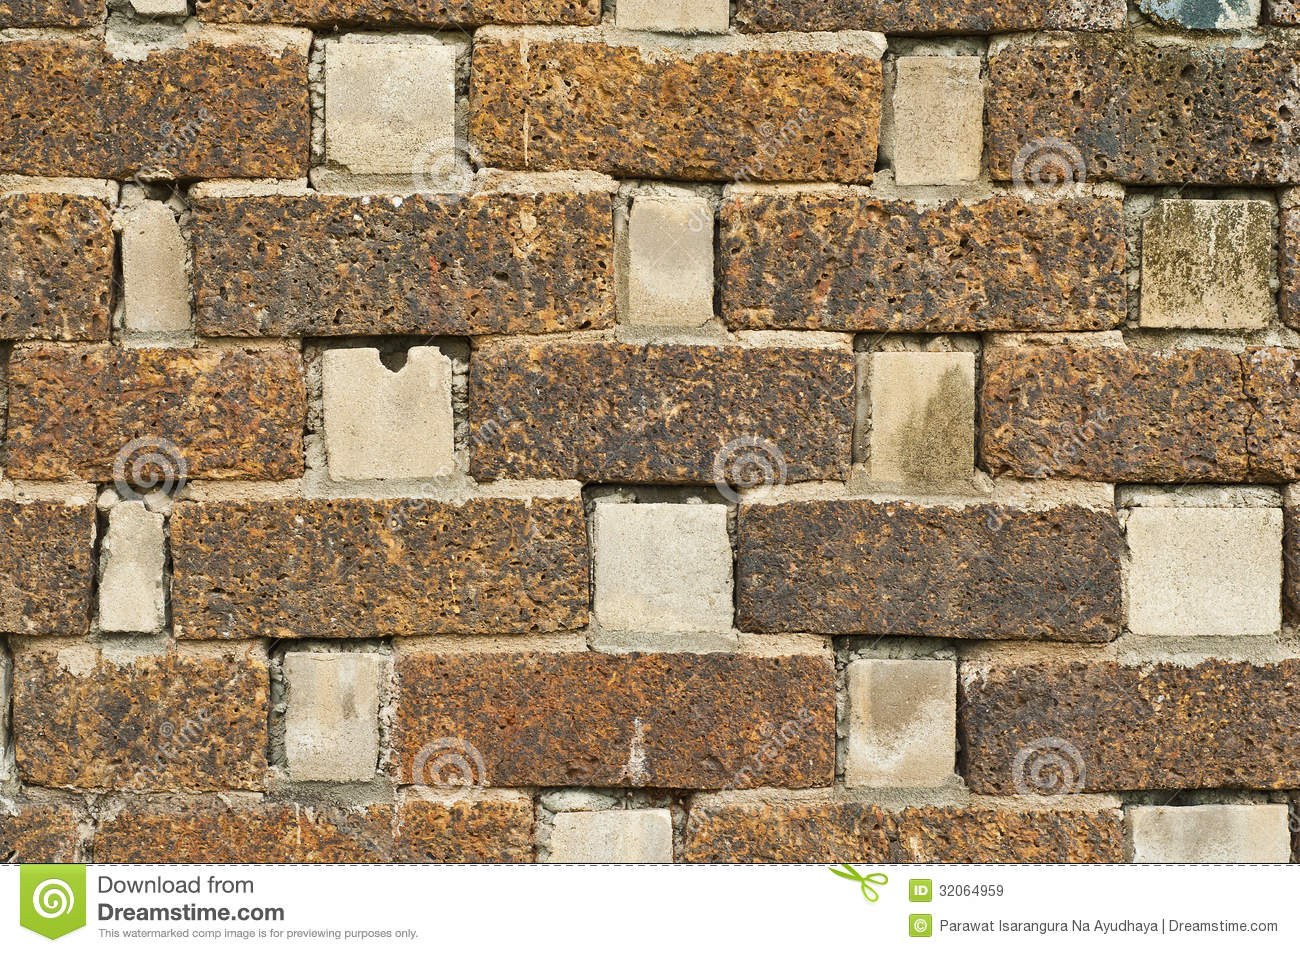 Laterite stone brick wall stock images image 35510874 - Laterite Wall Royalty Free Stock Images